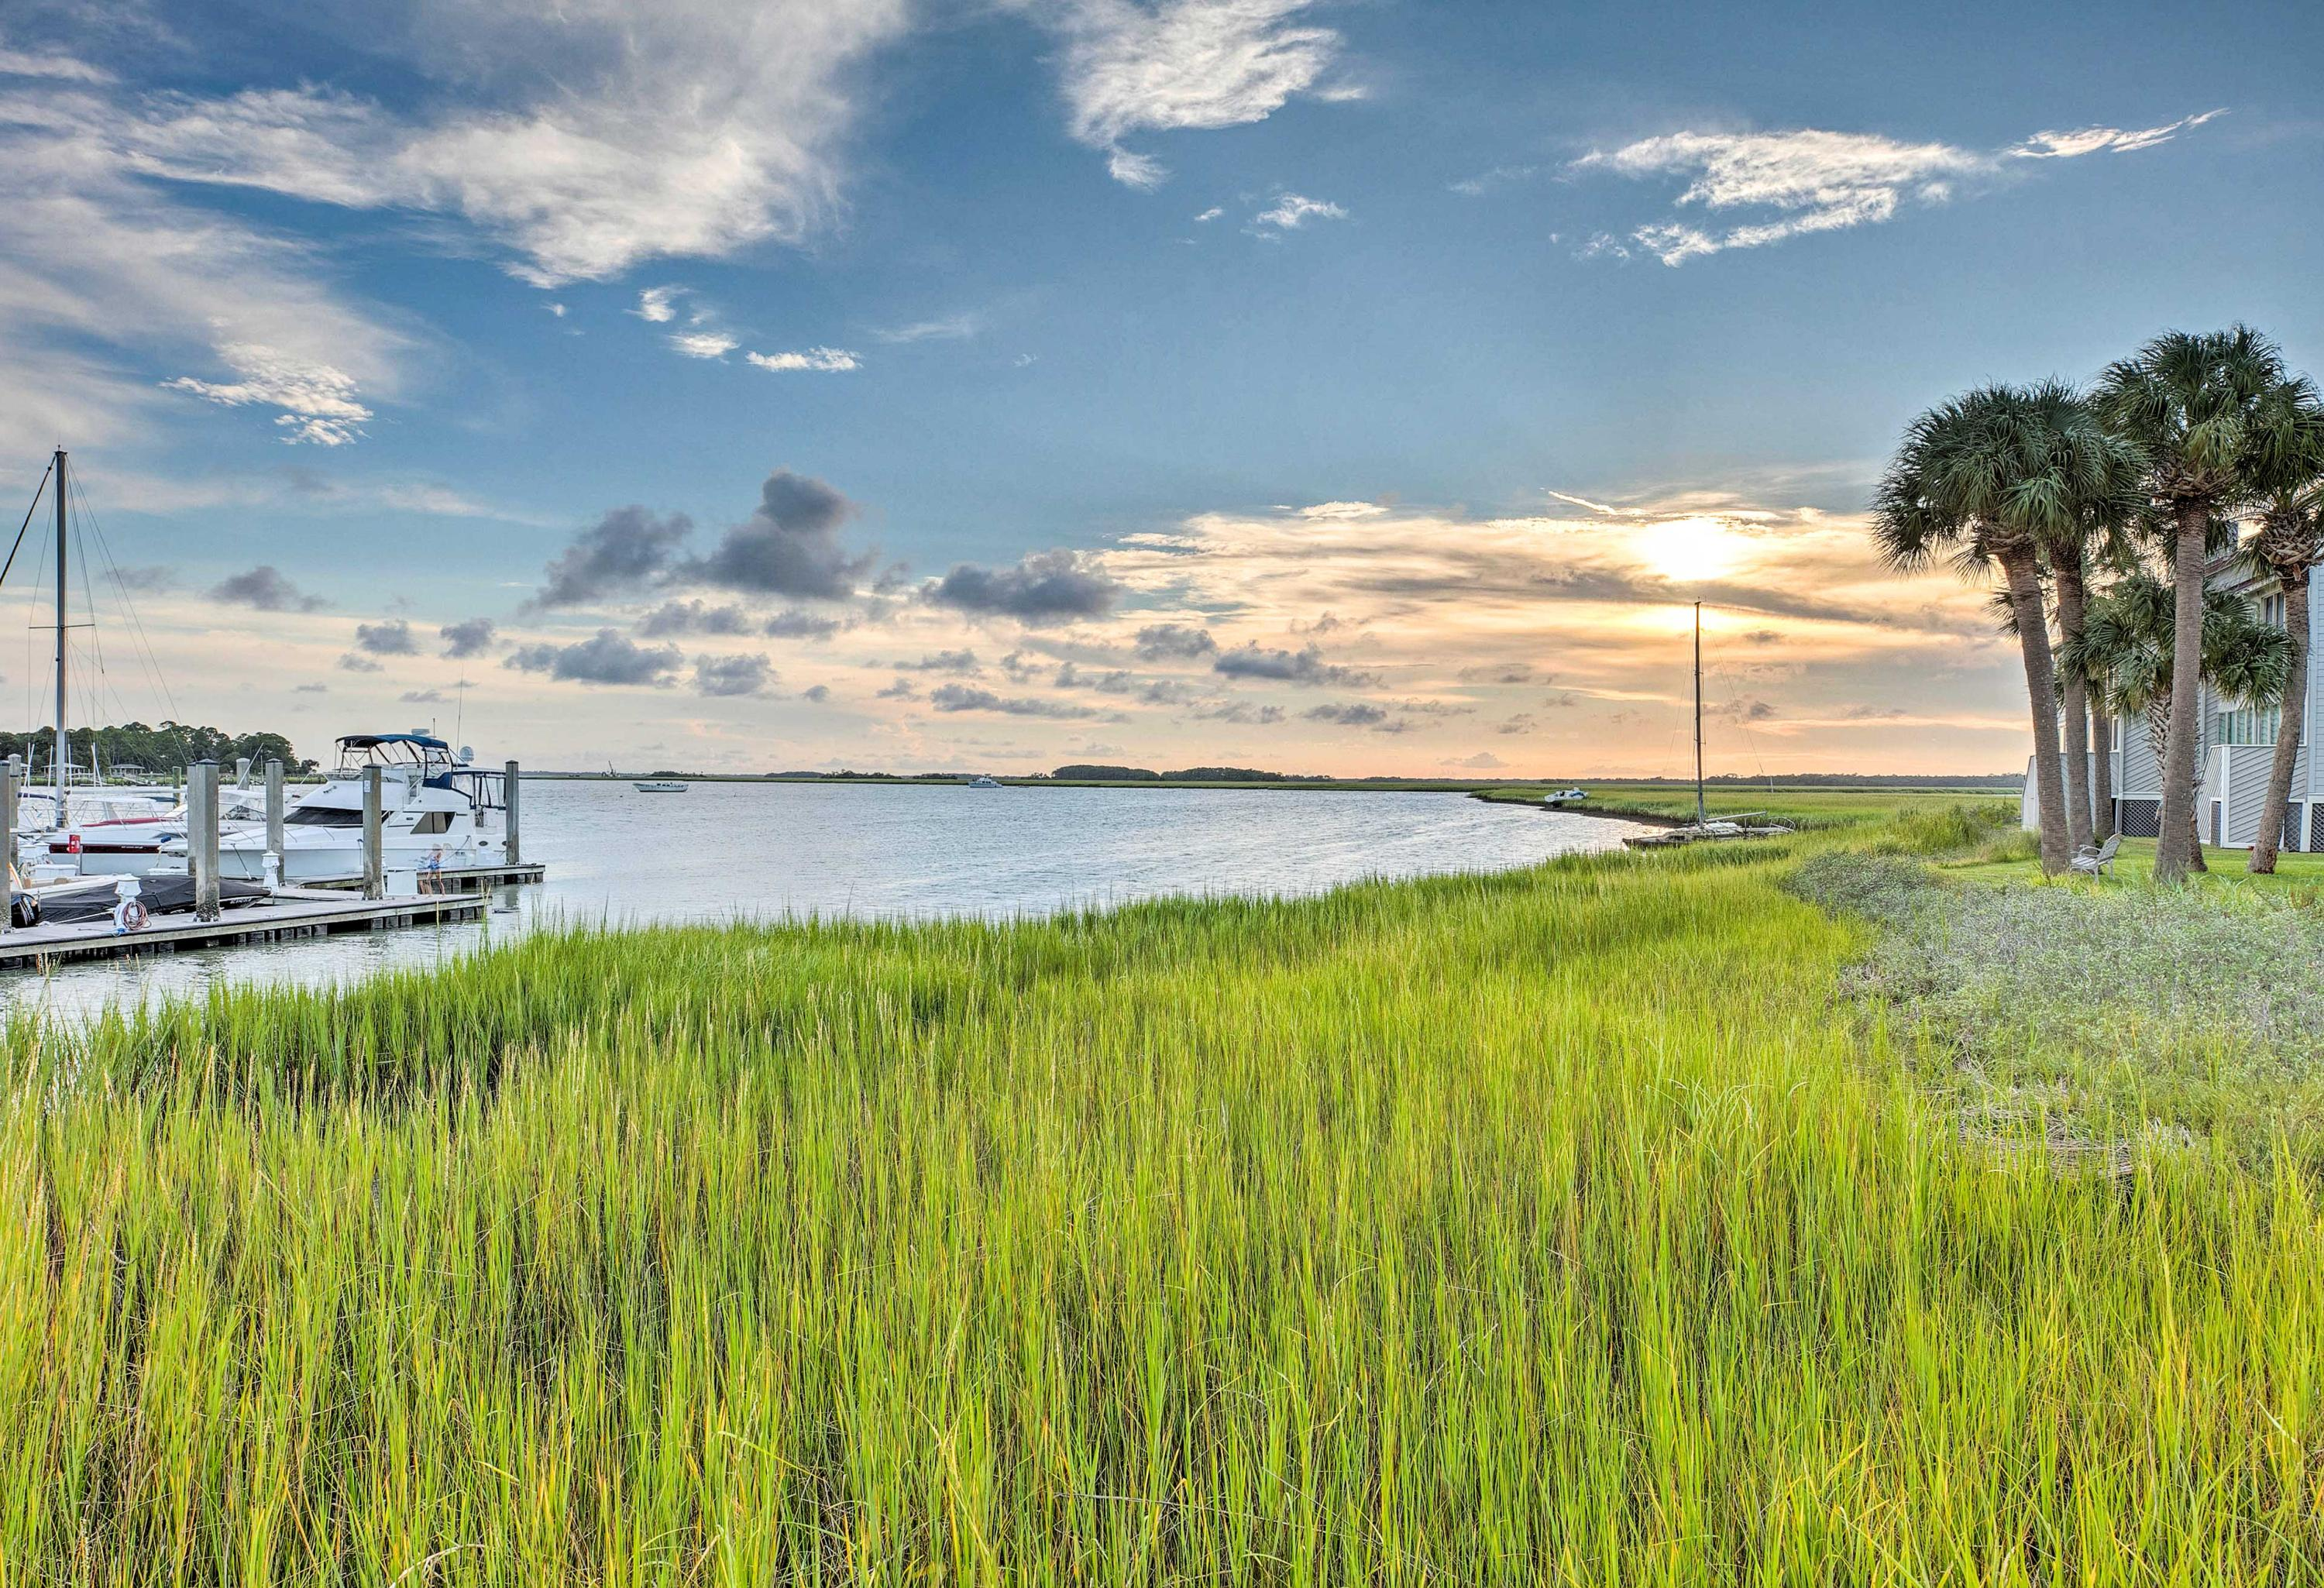 Mariners Cay Homes For Sale - 93 Mariners Cay, Folly Beach, SC - 2